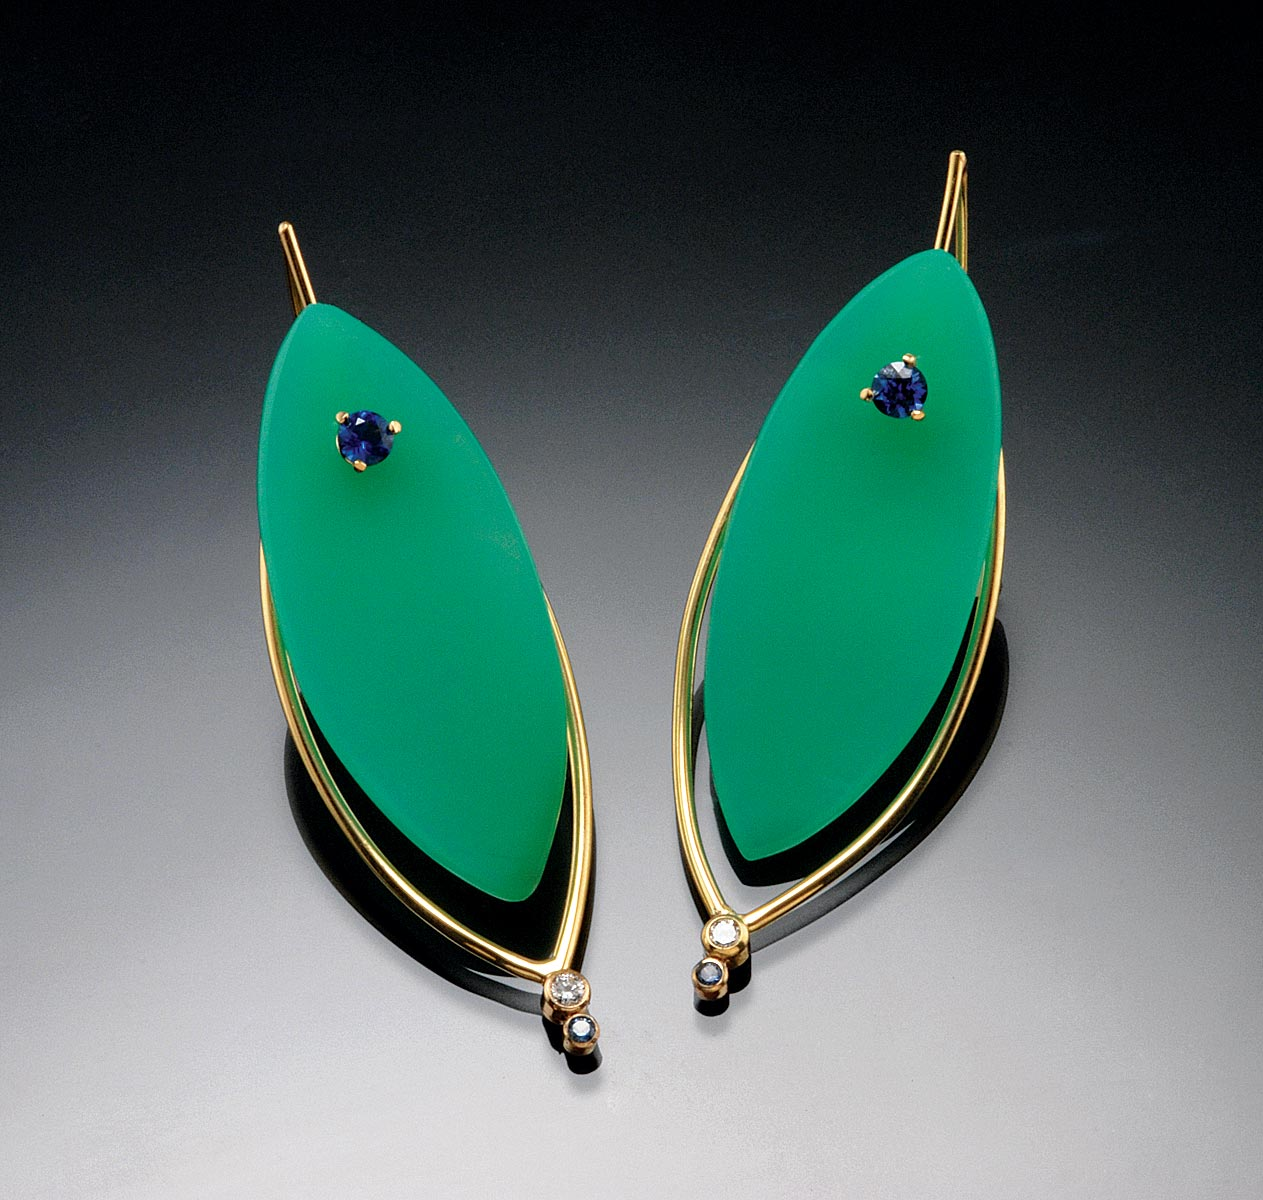 EARRINGS of carved green chrysoprase with faceted blue sapphires and diamonds in hand-fabricated eighteen karat yellow gold, 5.33 x 1.78 centimeters, 2013.